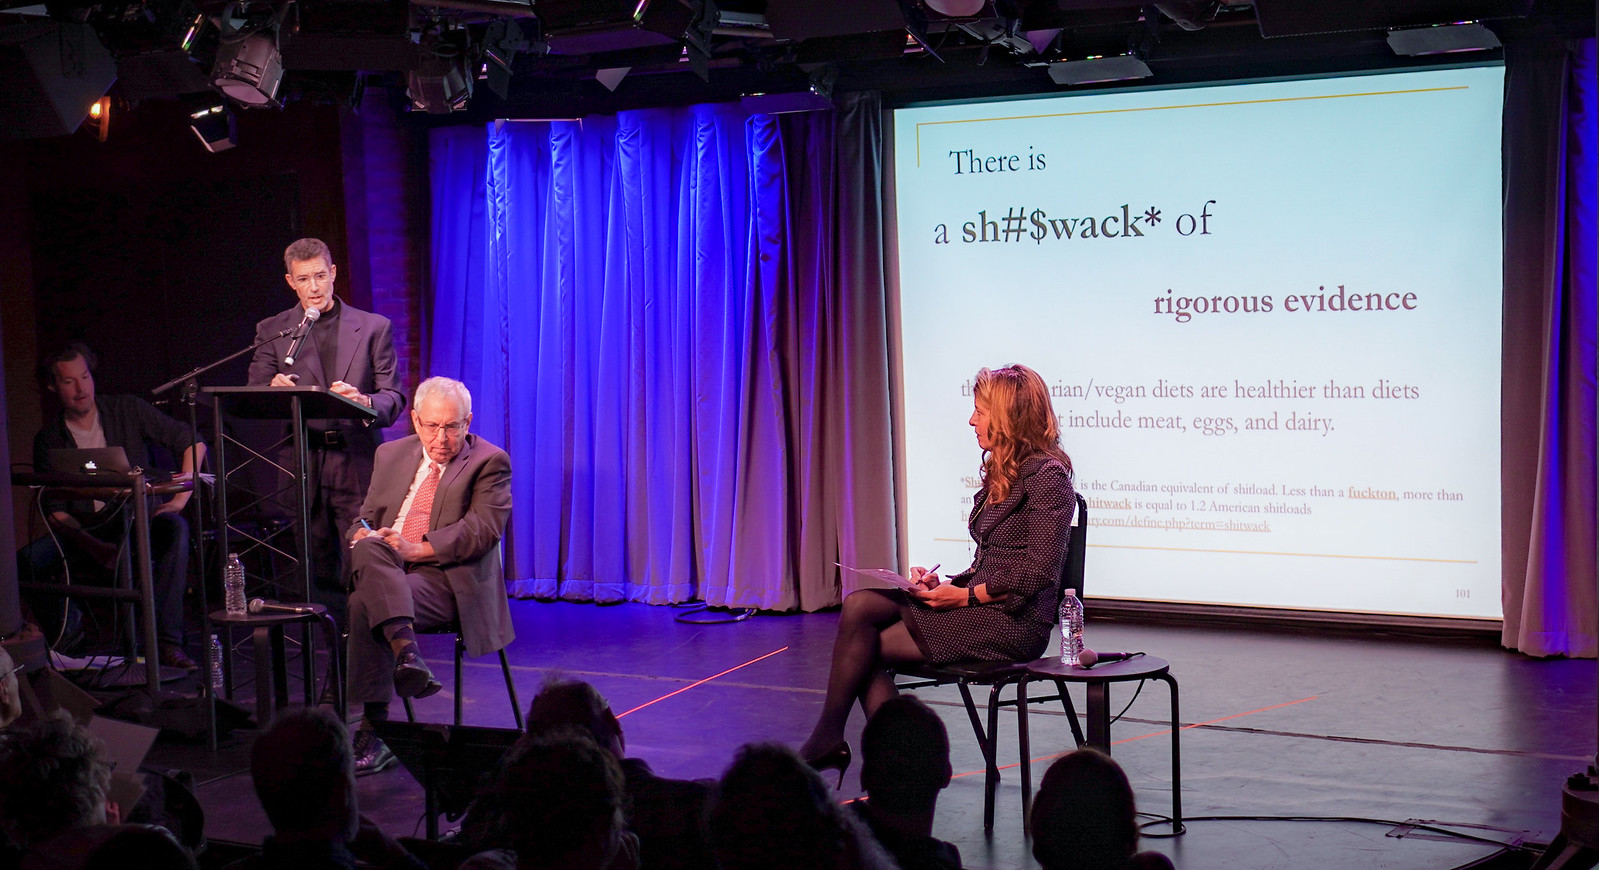 2019.05.13 The Soho Forum Debate, New York City, NY, USA 02508